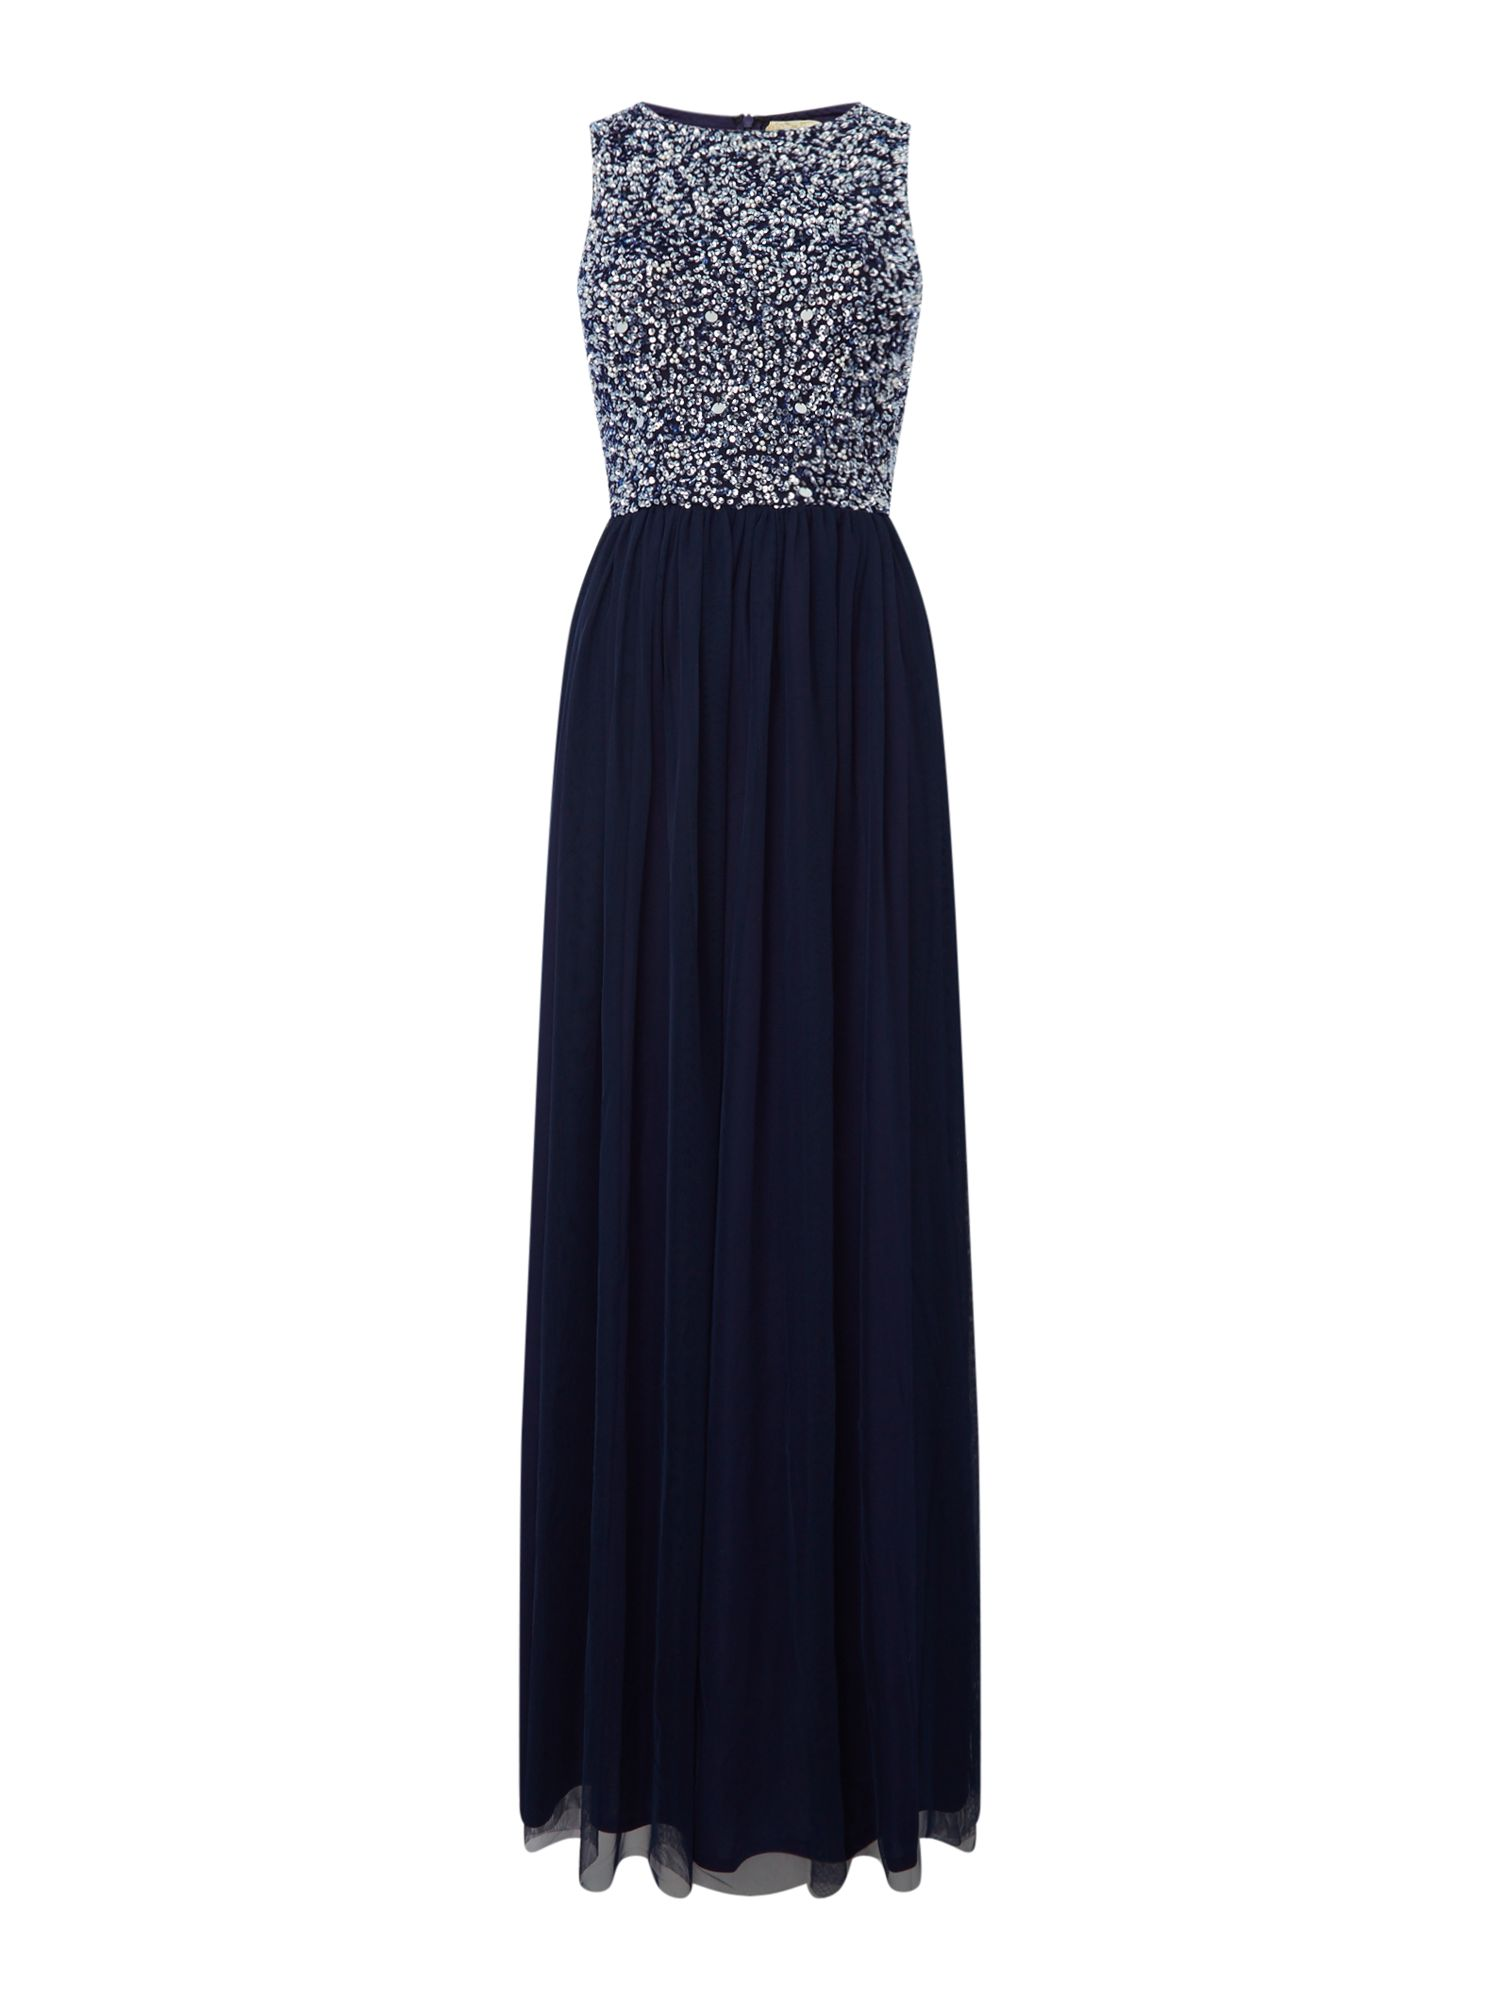 Lace and Beads High neck embellished maxi dress, Blue